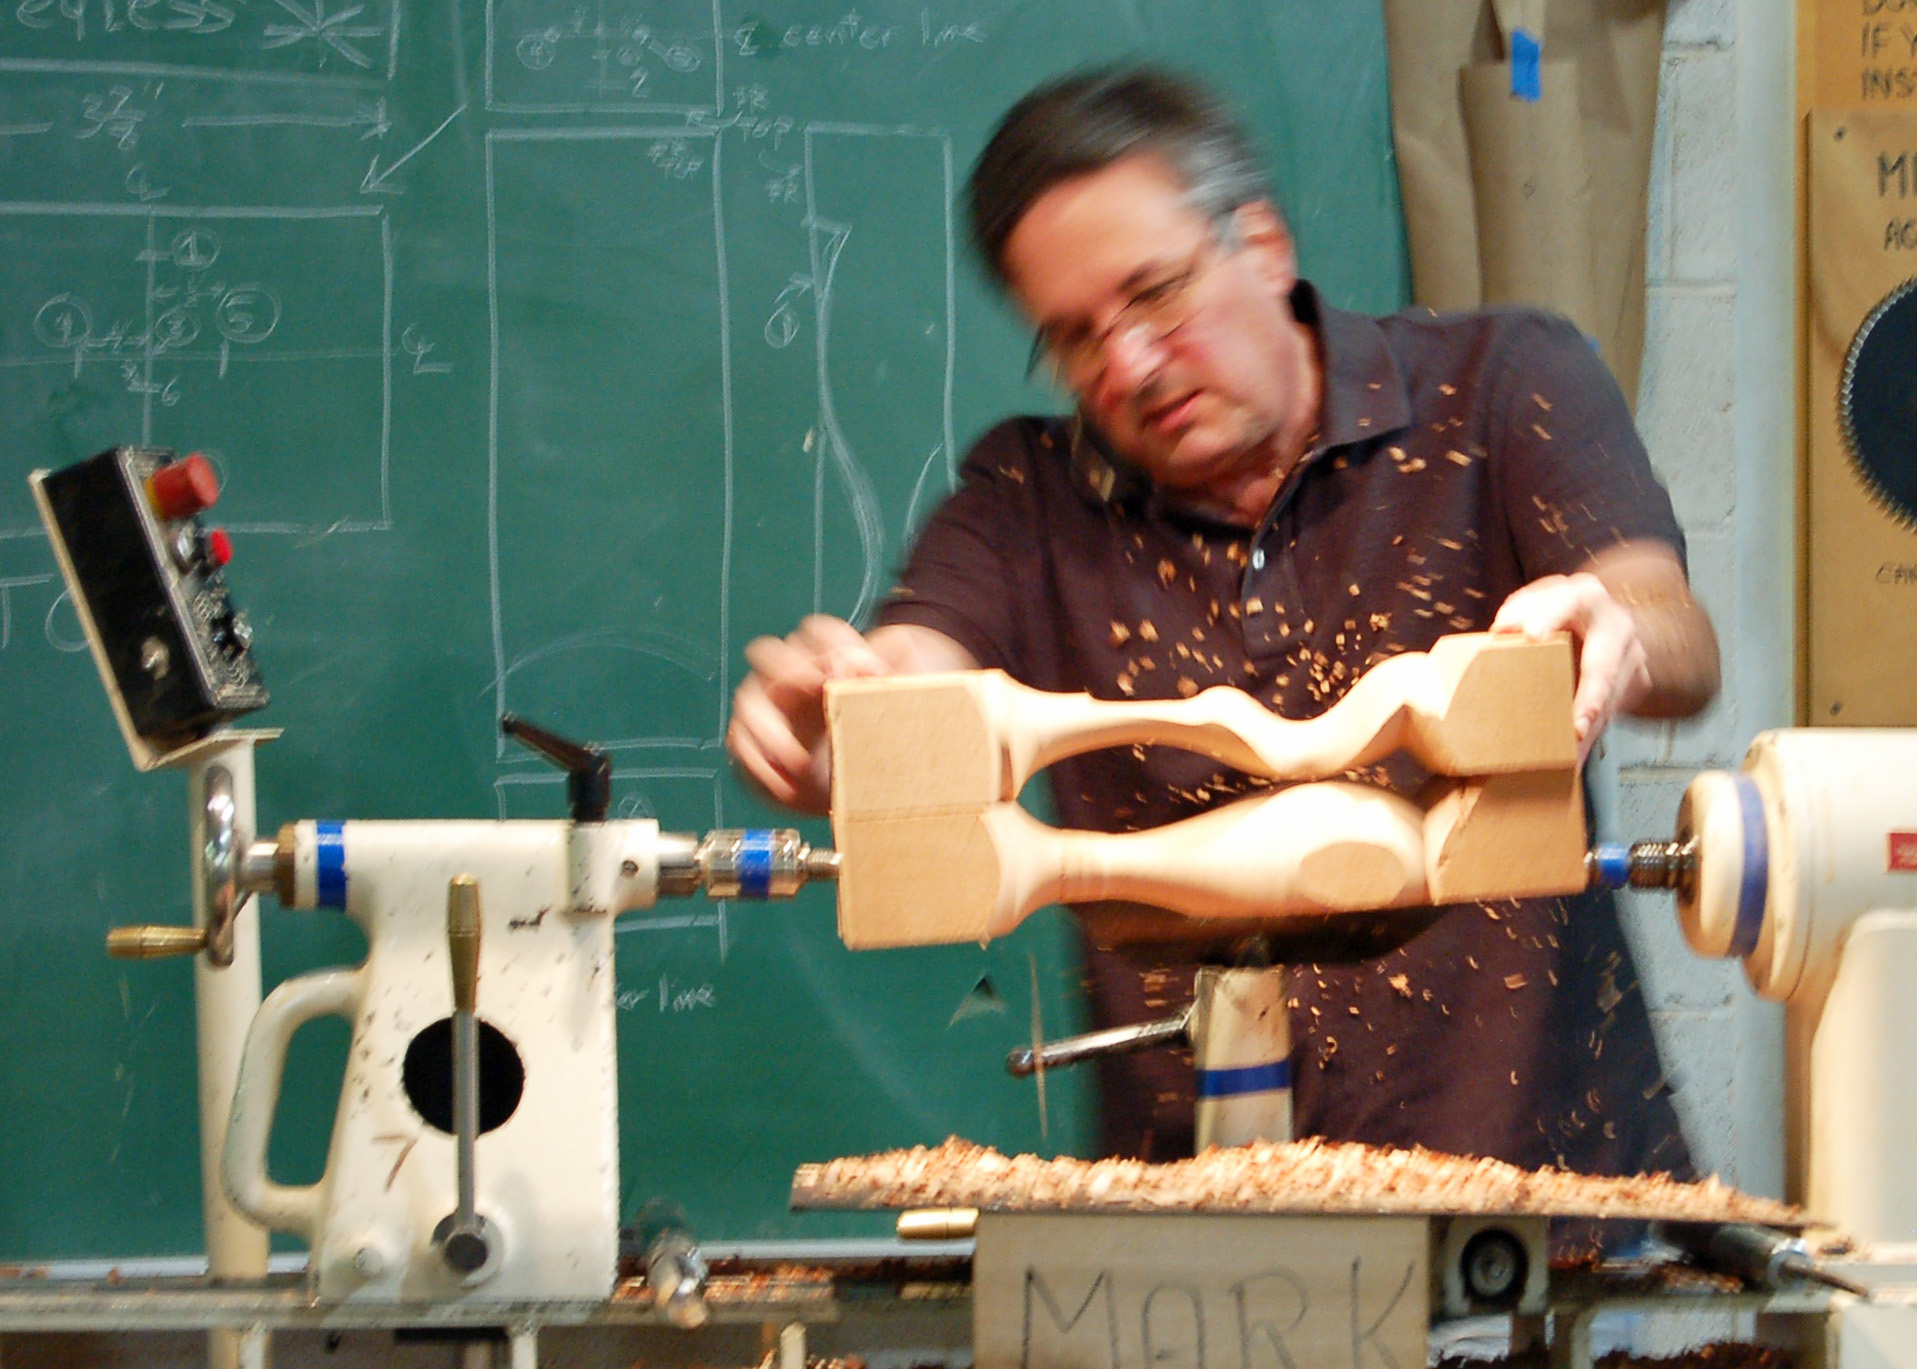 Mark checks the depth of cut along the figure using his model.